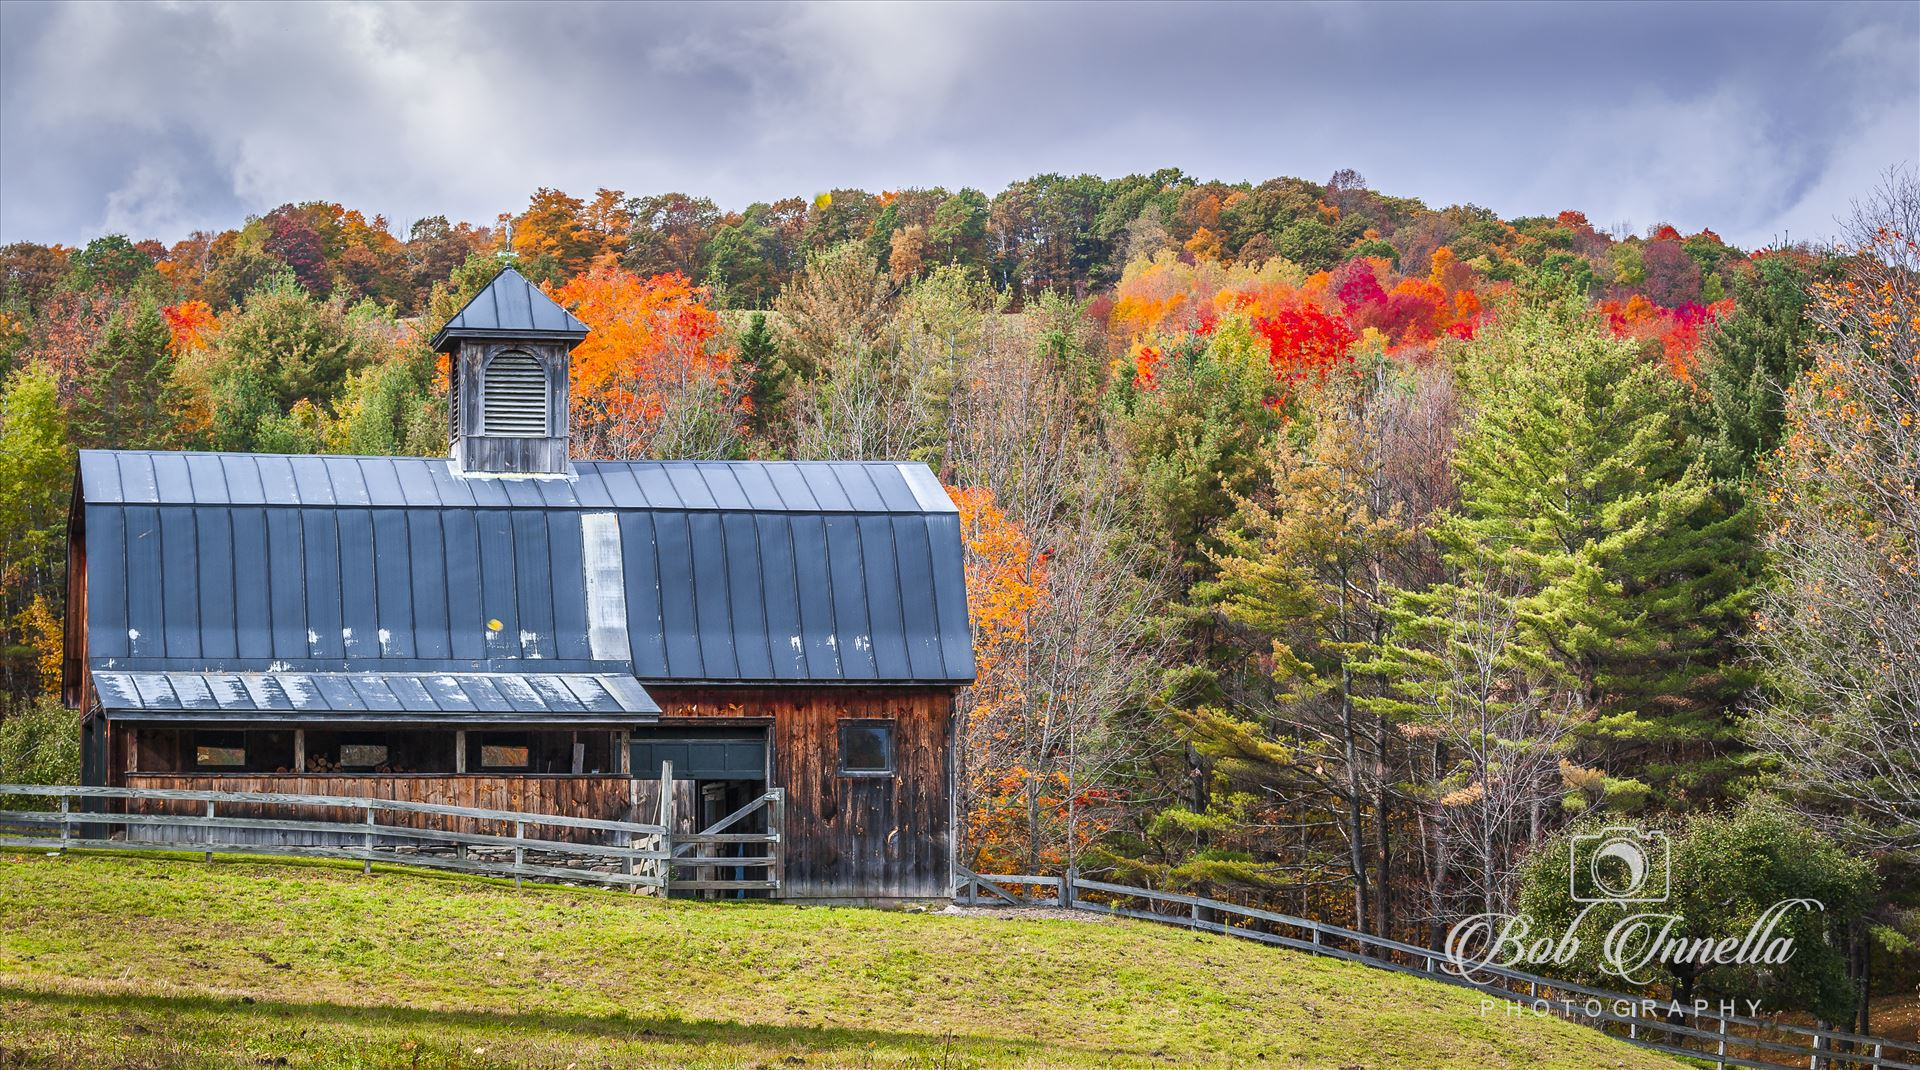 Vermont Horse Barn - Vermont Horse Barn in October Foliage by Buckmaster